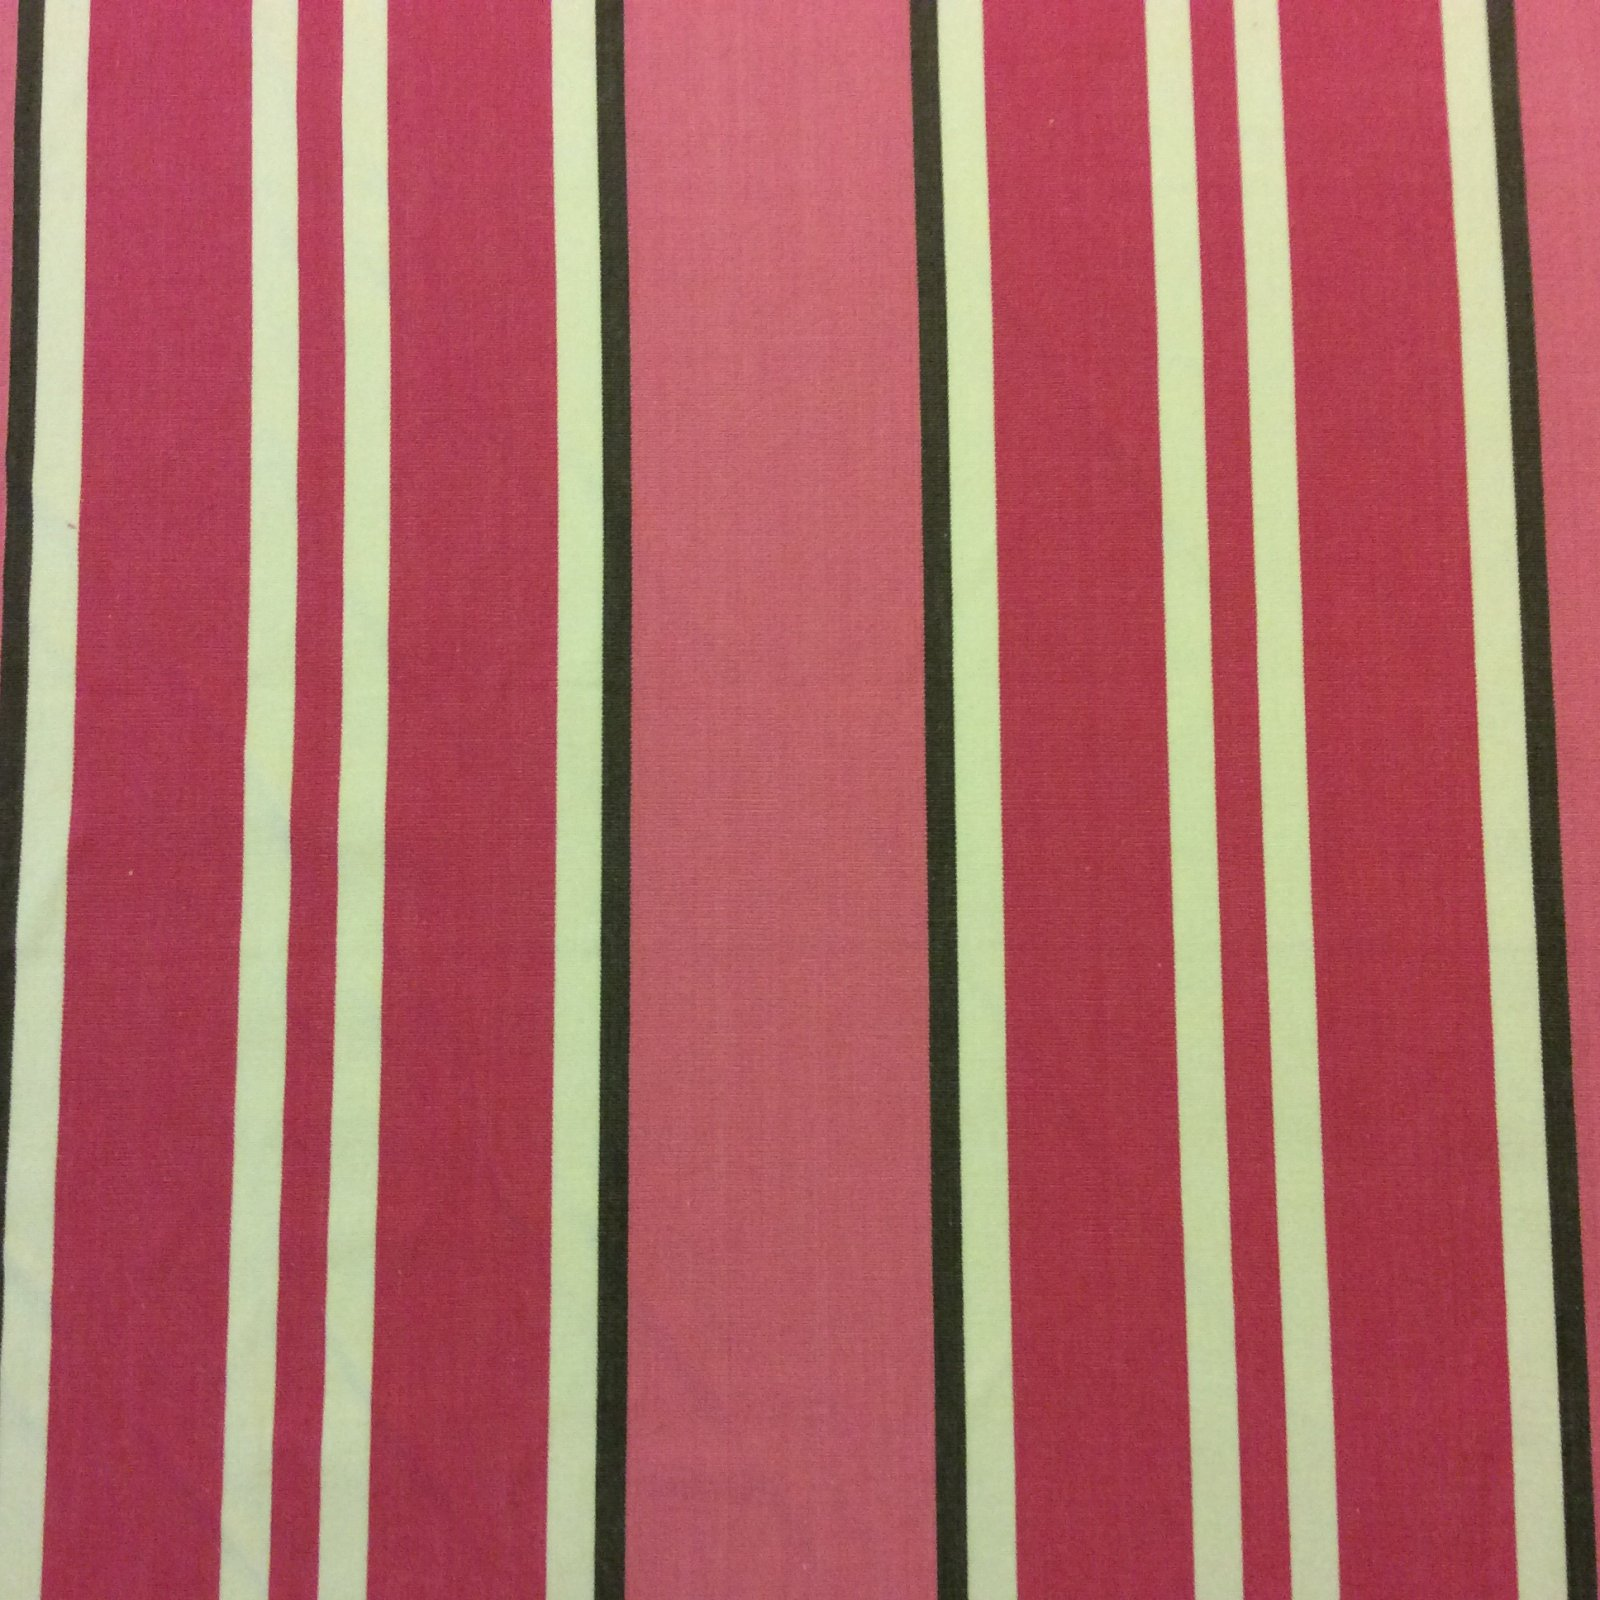 Candy Stripe Pink Heavy Cotton Home Dec Drapery Fabric OR102